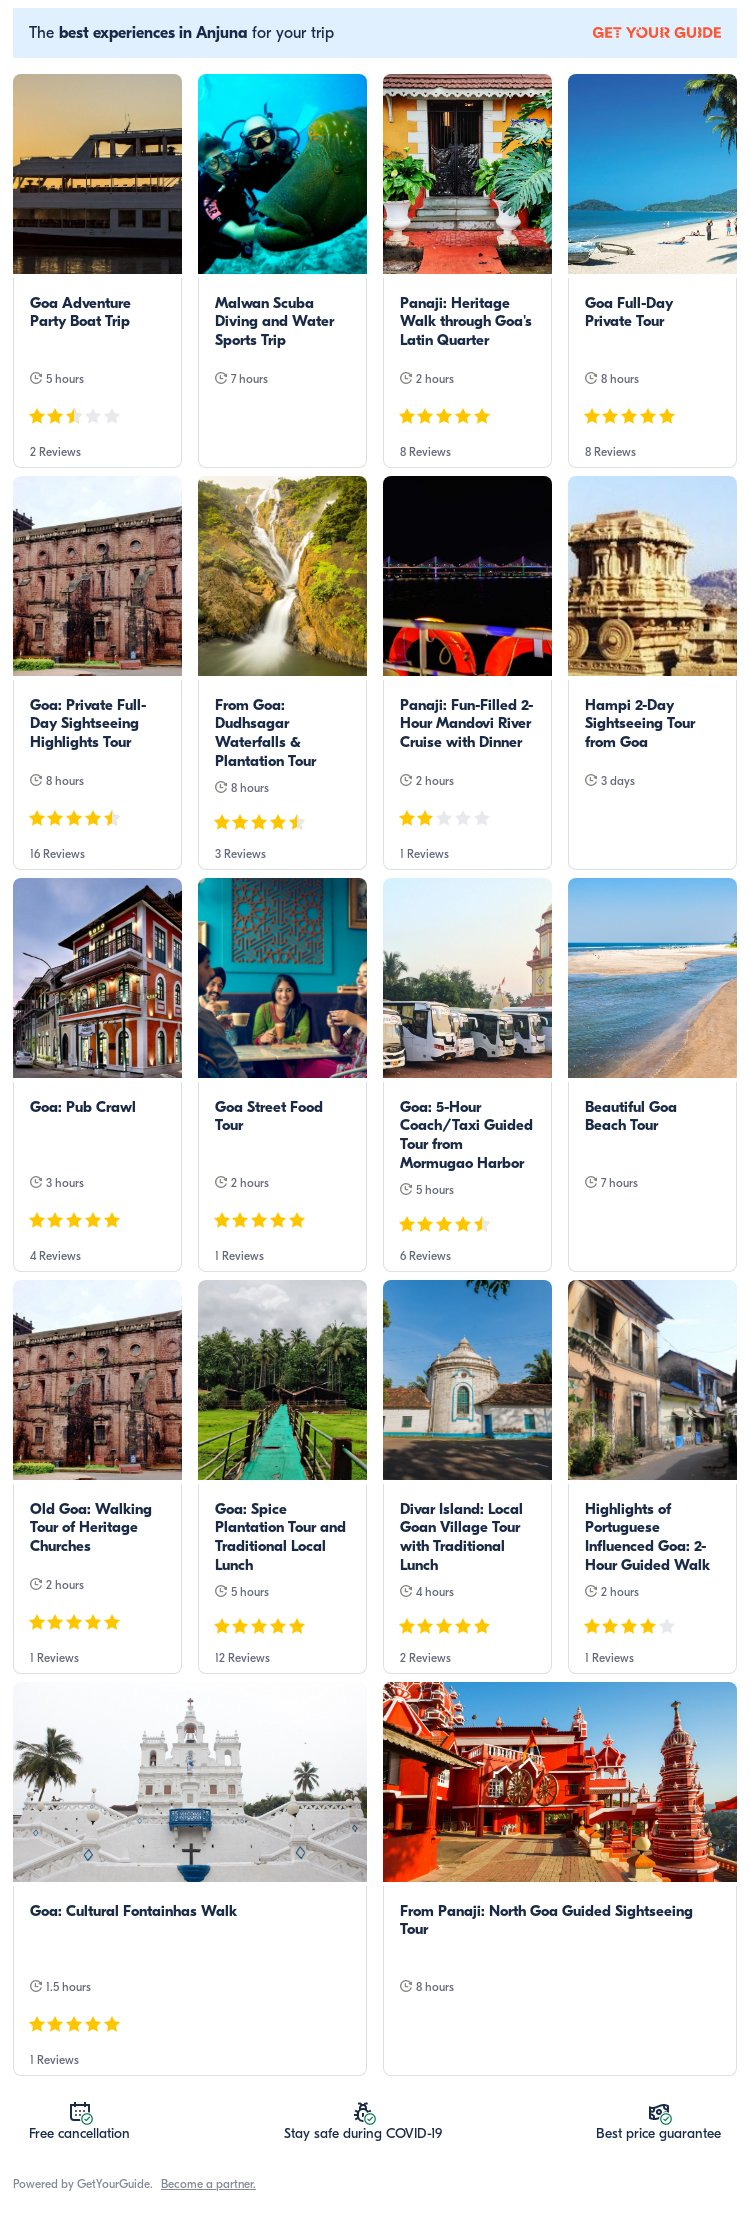 goa: Get Your Guide